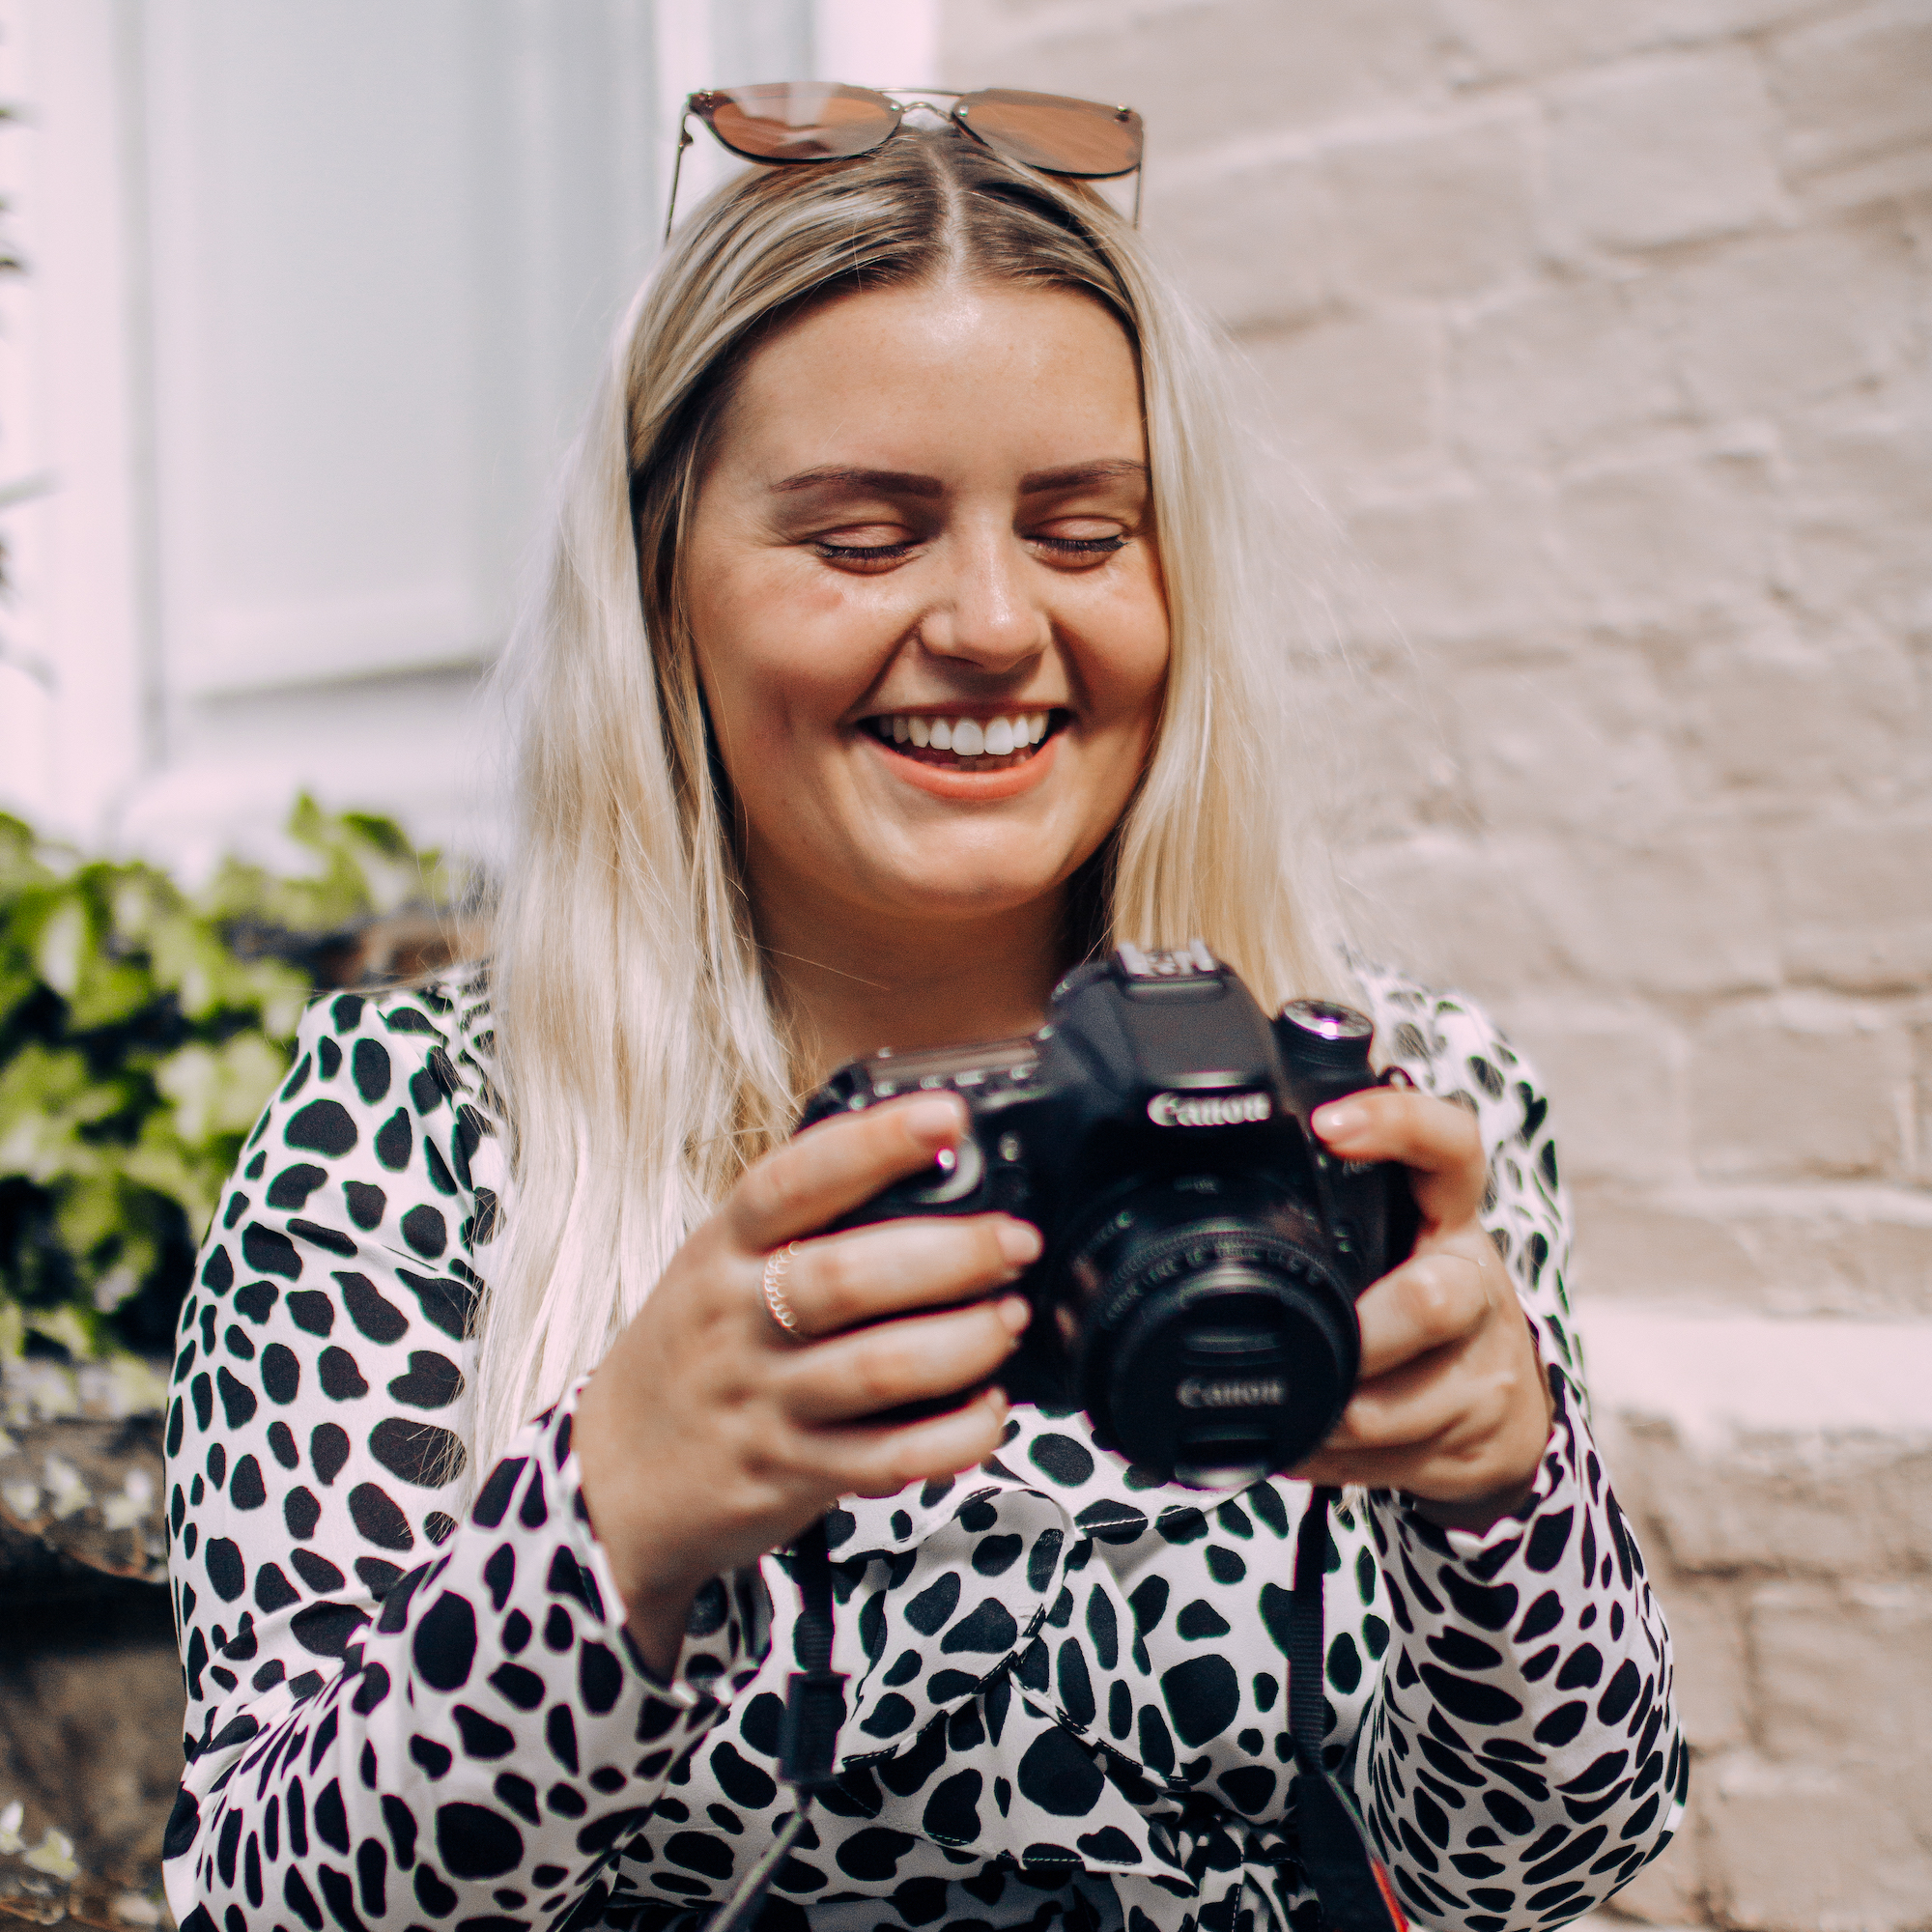 - I'm Mollie, I'm 23 years old and I'm a creative freelancer living in Kent. I work with national brands to small businesses, here in Tunbridge Wells, to produce honest and creative photography.I have a degree in Digital Photography and I'm currently an Editorial Assistant and the Social Media Manager at Muddy Stilettos Kent.Here's how I can help you!Or read my blog for social media, photography and freelancing tips.